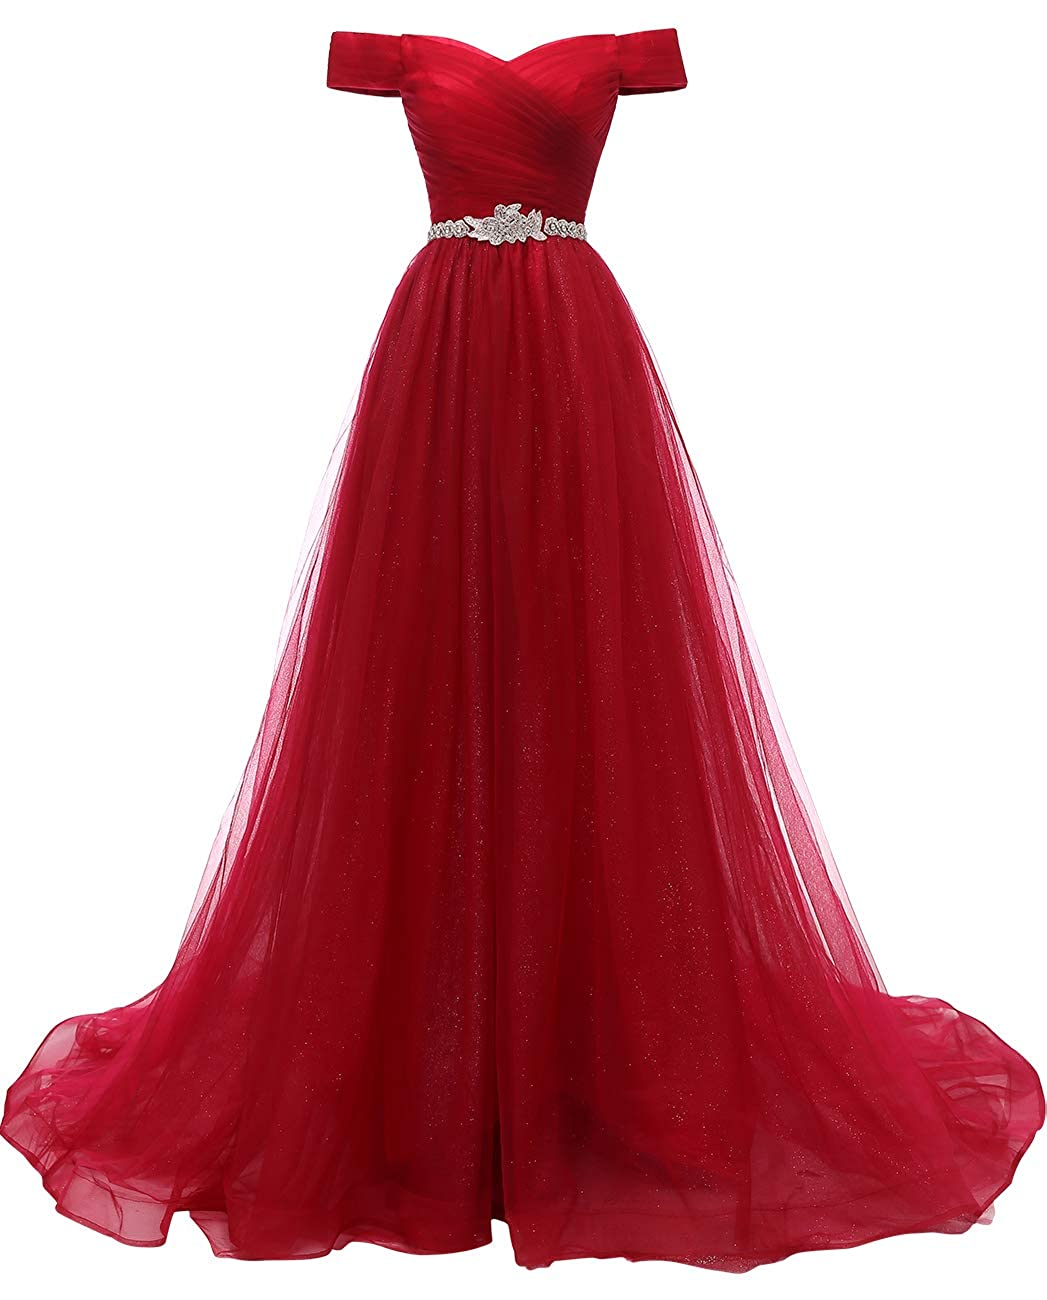 Red VKBRIDAL Women's Off Shoulder A Line Prom Dresses Long Beaded Princess Ball Gowns